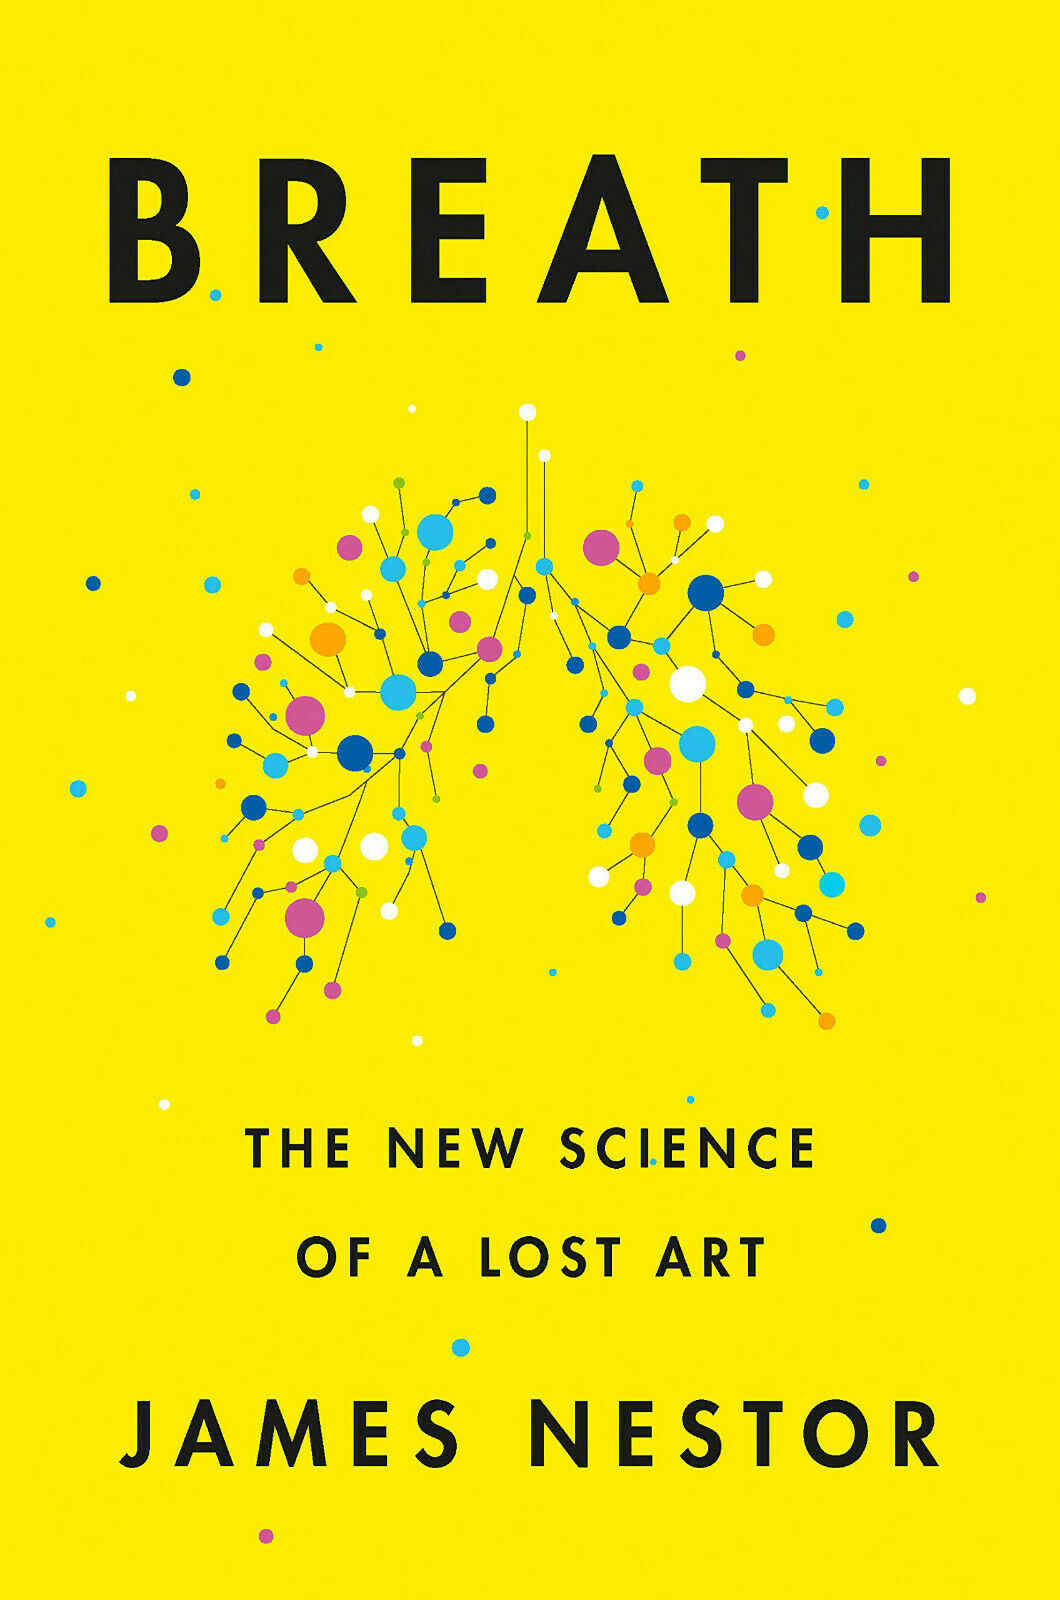 Breath: The New Science of a Lost Art by James Nestor 2020 (Digital) 2